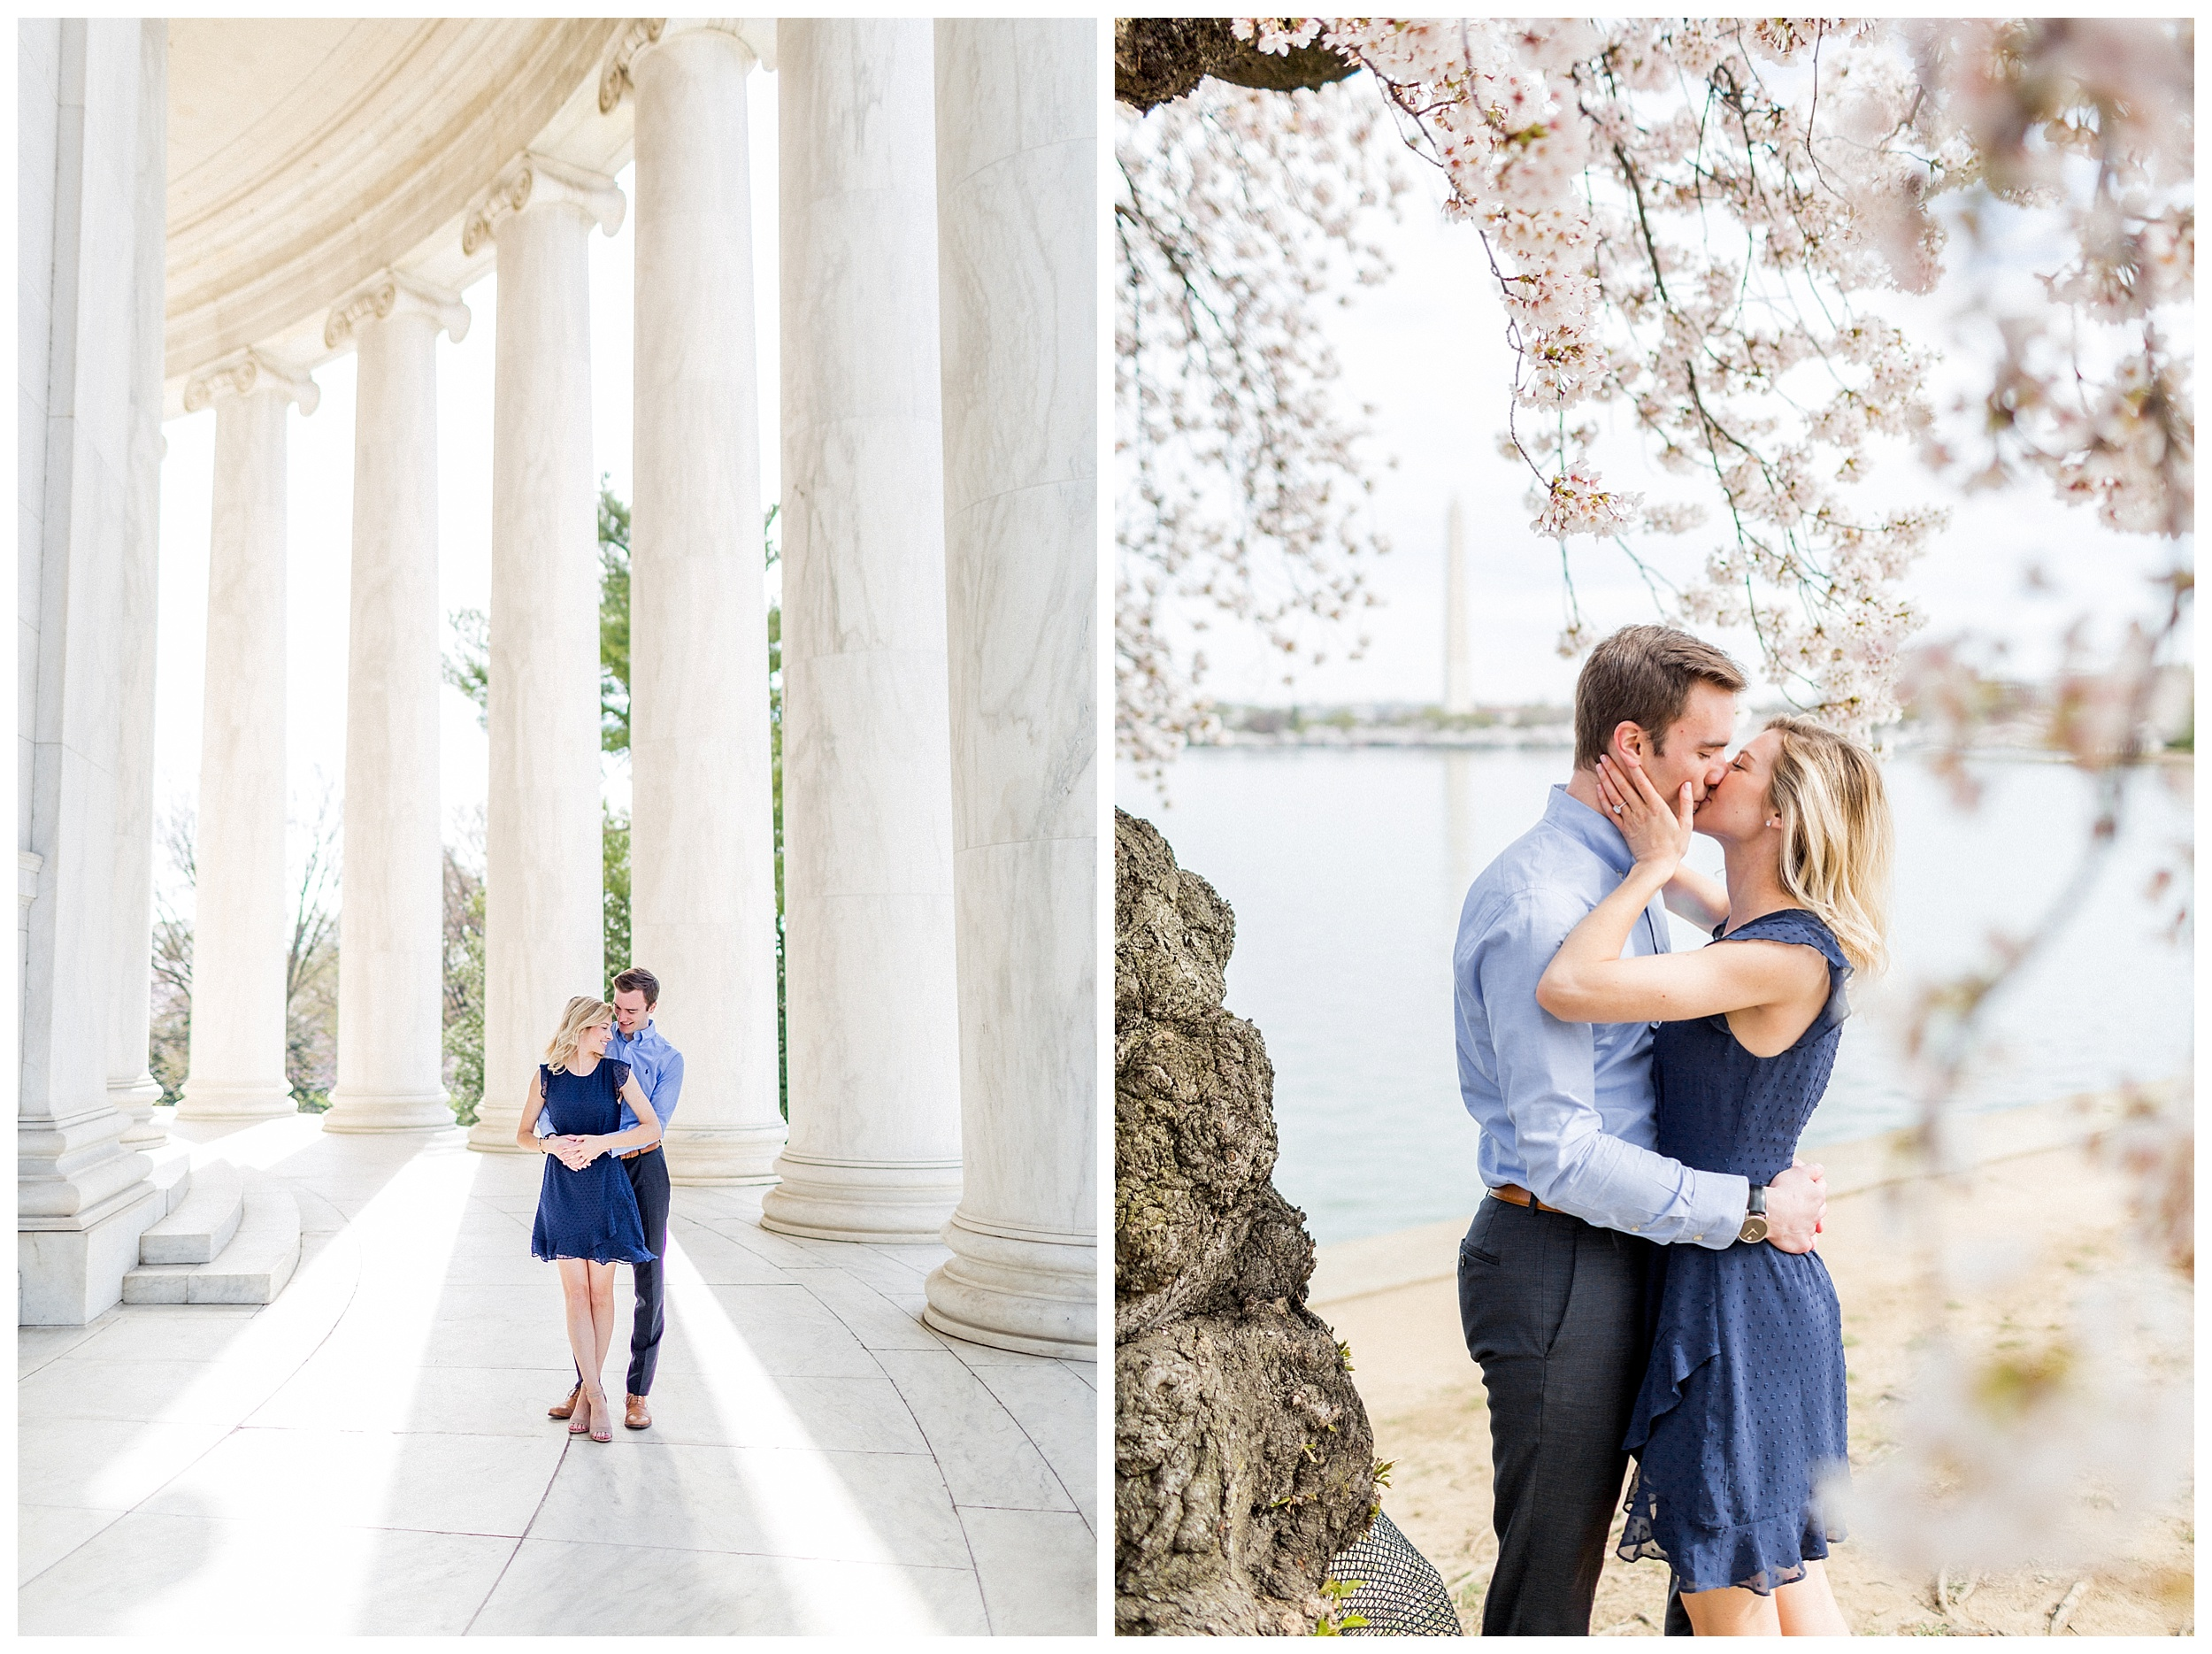 District of Columbia Cherry Blossom Engagement Session_0026.jpg